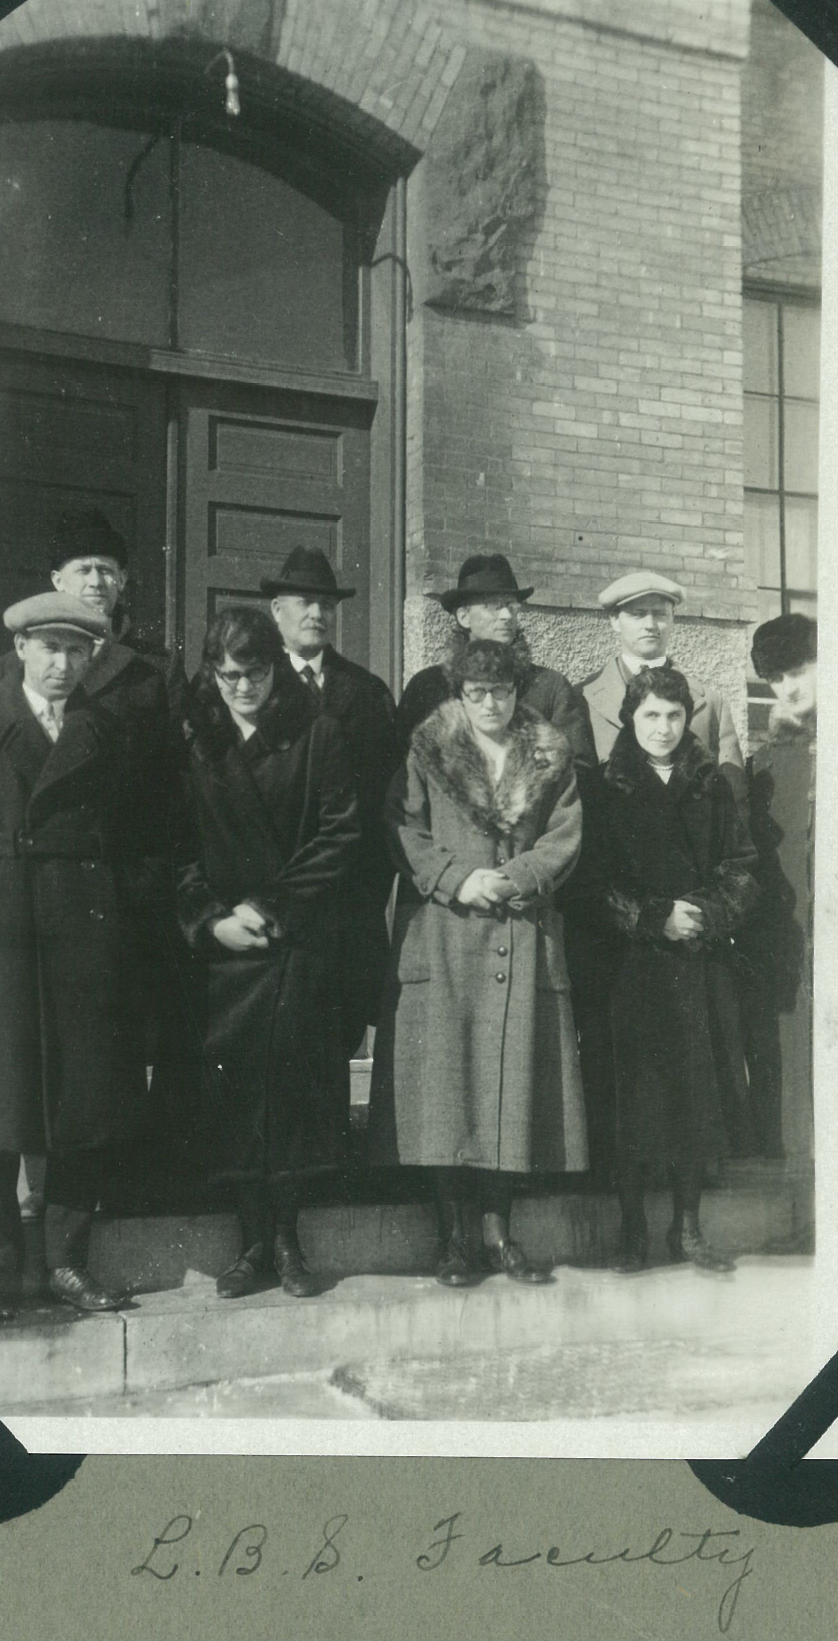 E.M. Broen, pictured with a handful of the Hillcrest and Bible School faculty, watched his staff carry his vision for Hillcrest Academy by going with no or reduced-pay for five years during some of Hillcrest's darkest times financially.